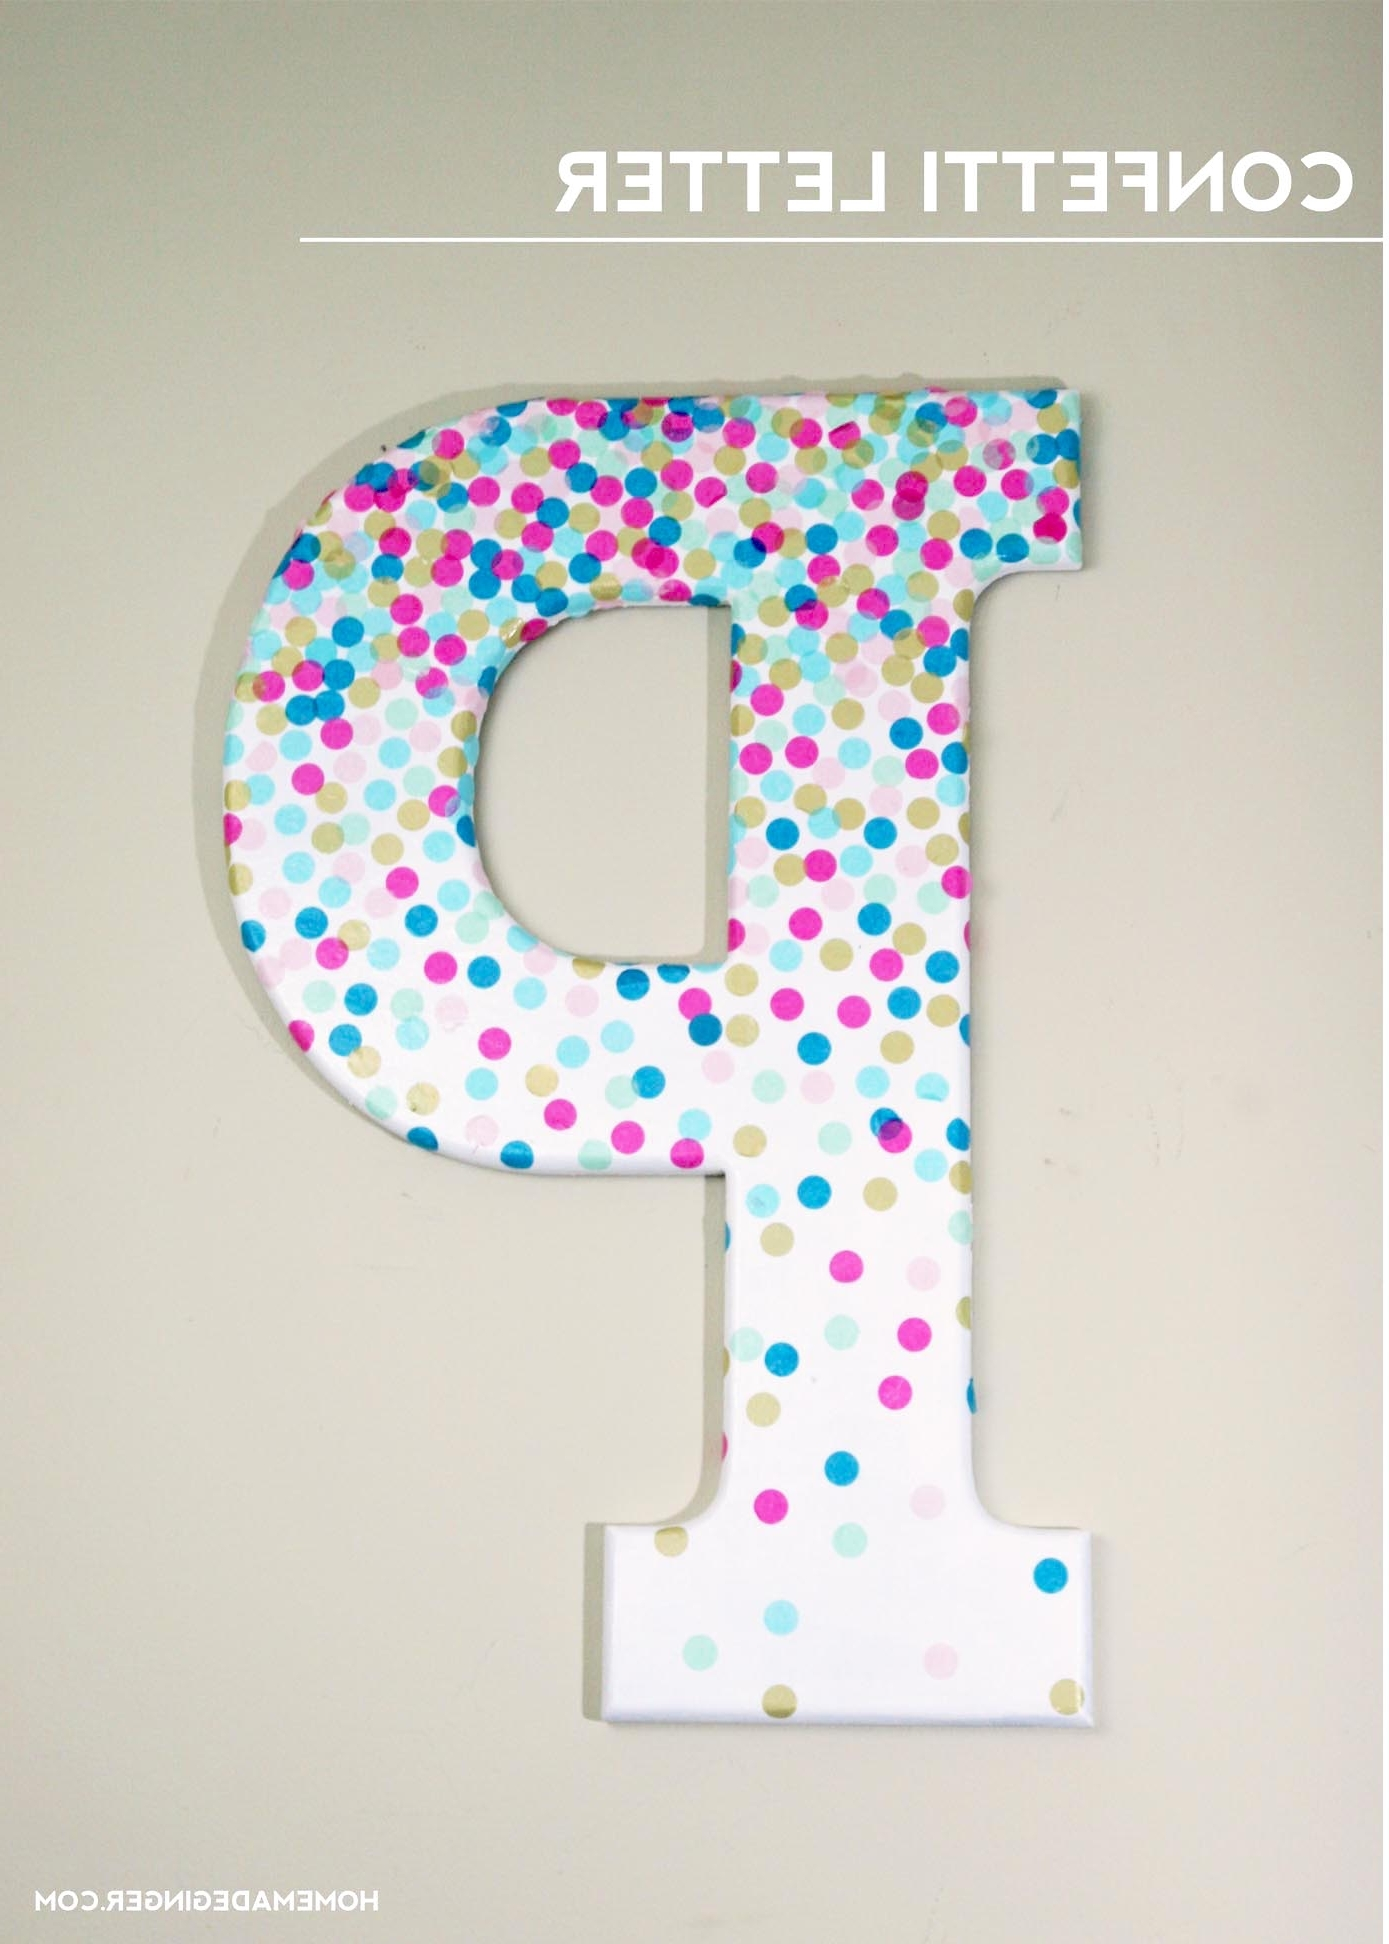 Letter Wall Art Pertaining To Latest Diy Wall Art: Confetti Letter – Homemade Ginger (View 5 of 15)